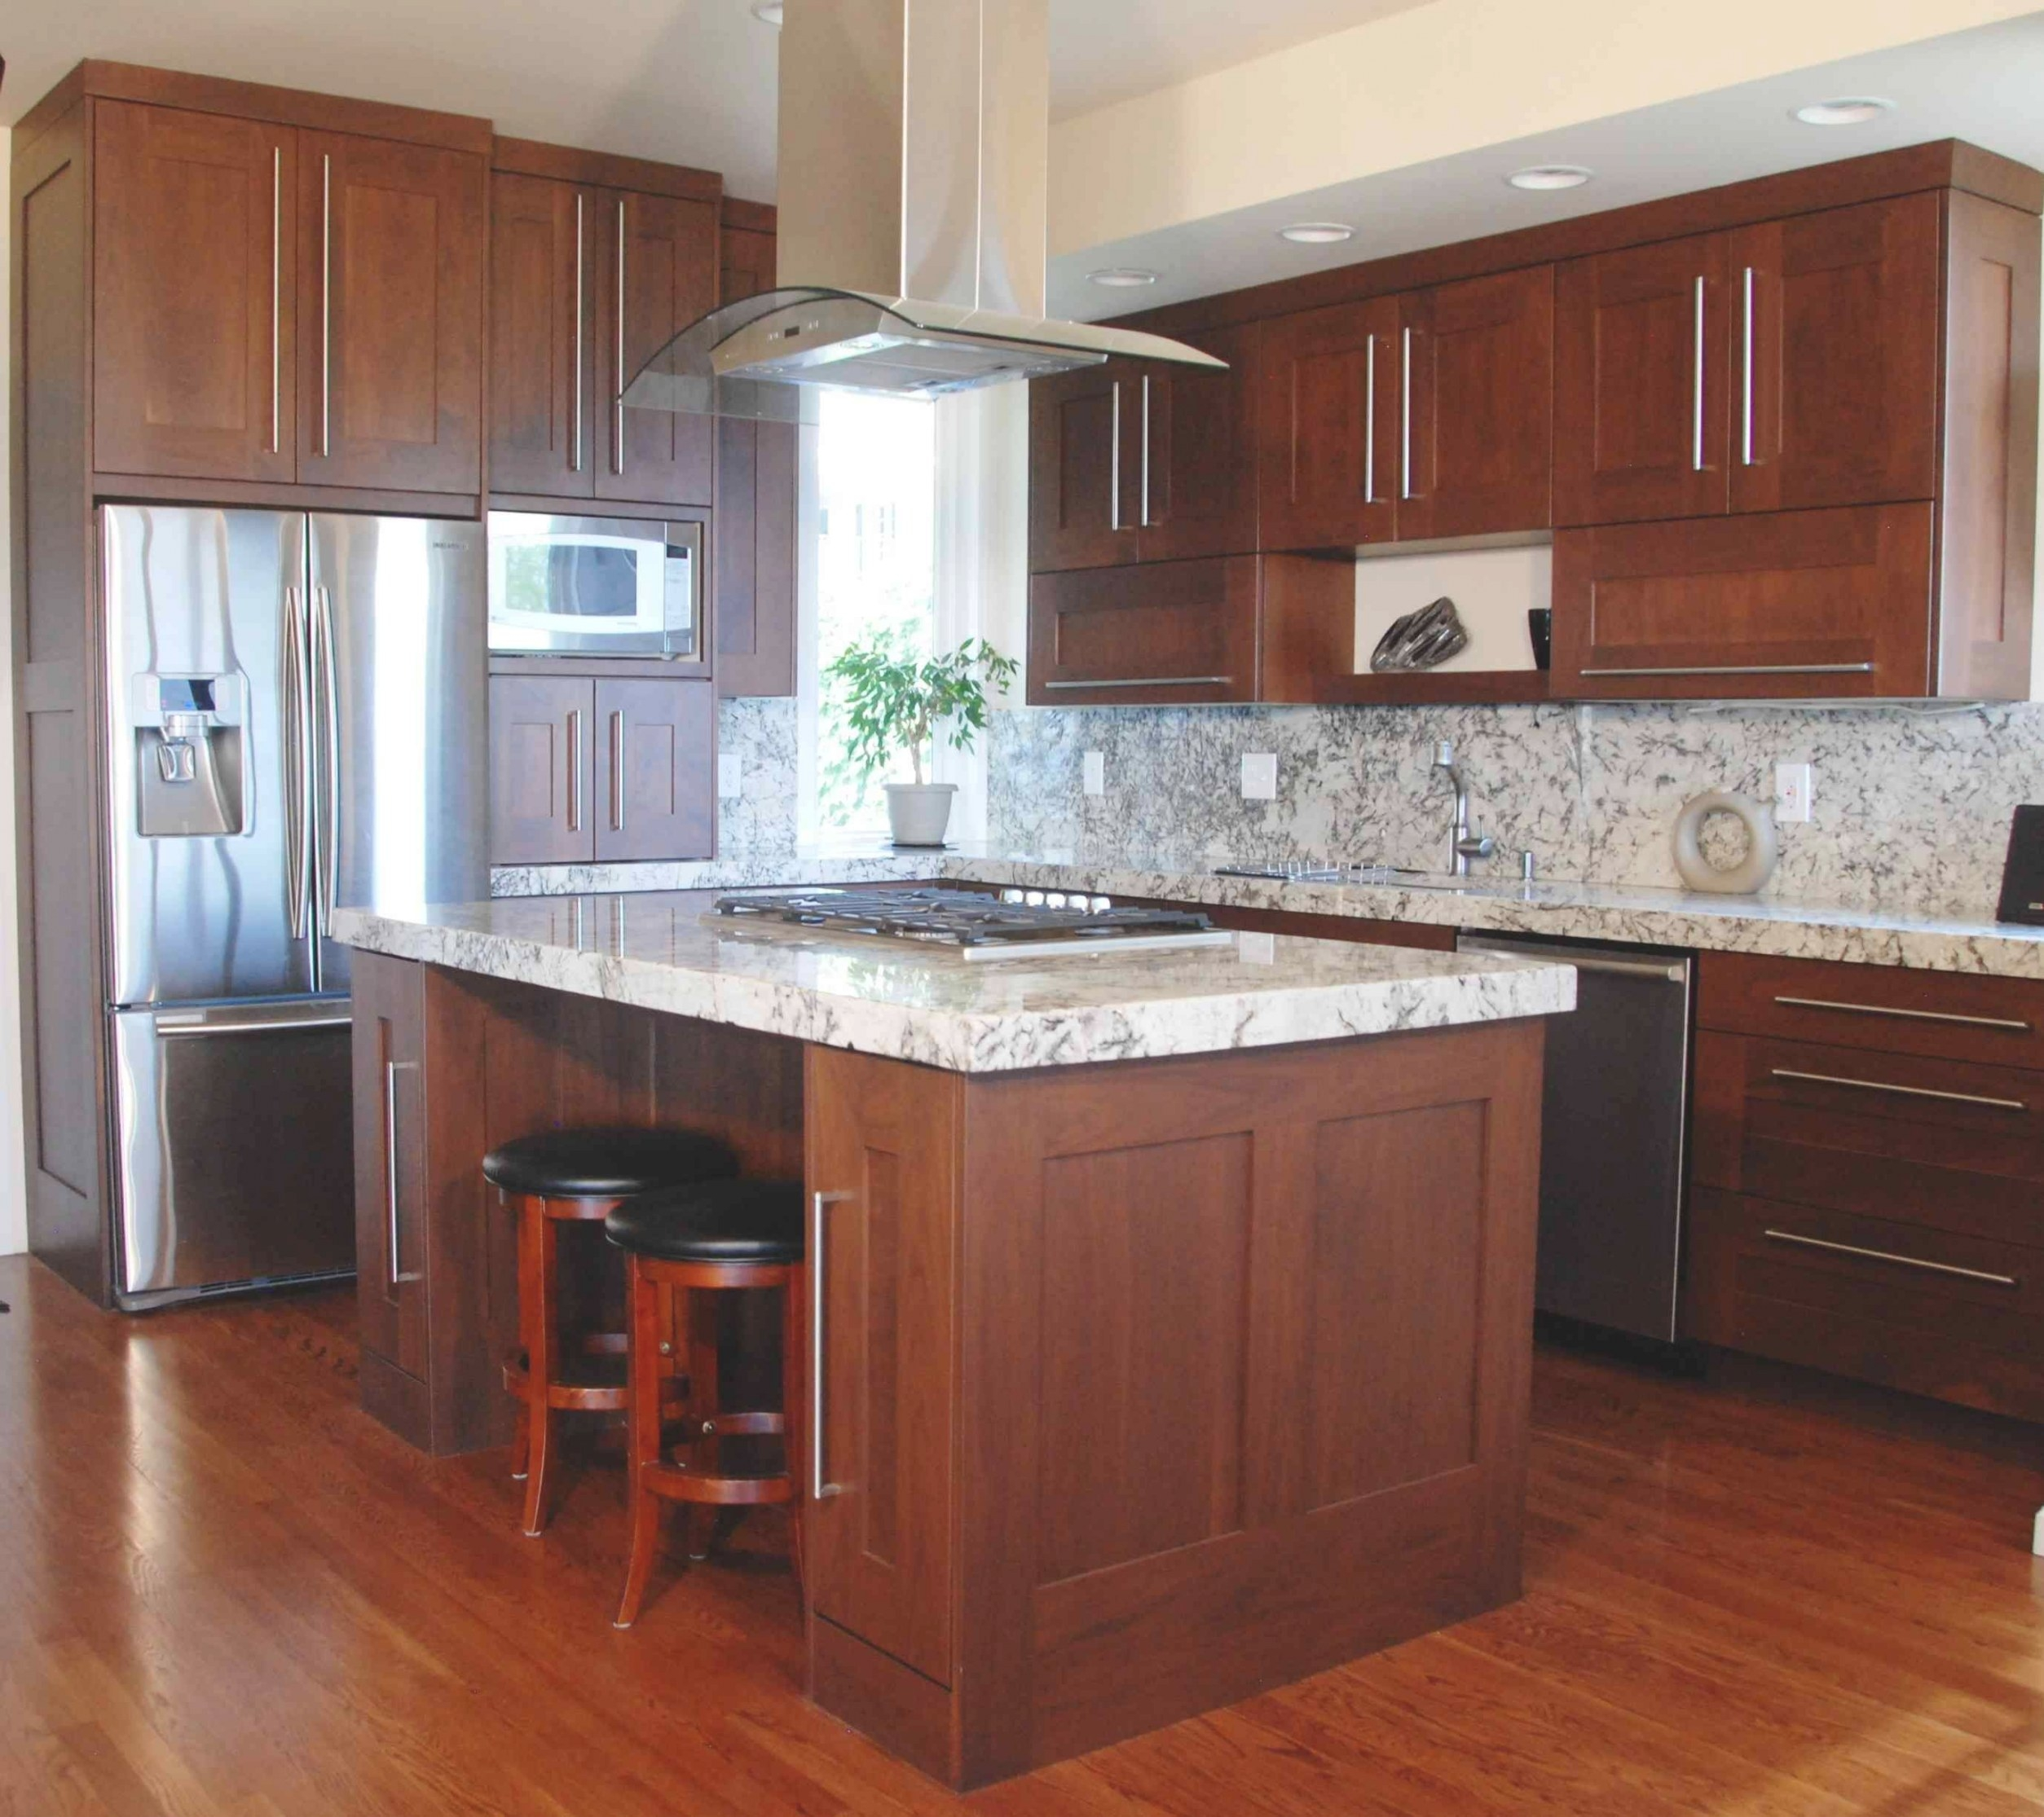 Cherry Wood Cabinets With White Granite Counters And White within Cherry Wood Cabinet Kitchens